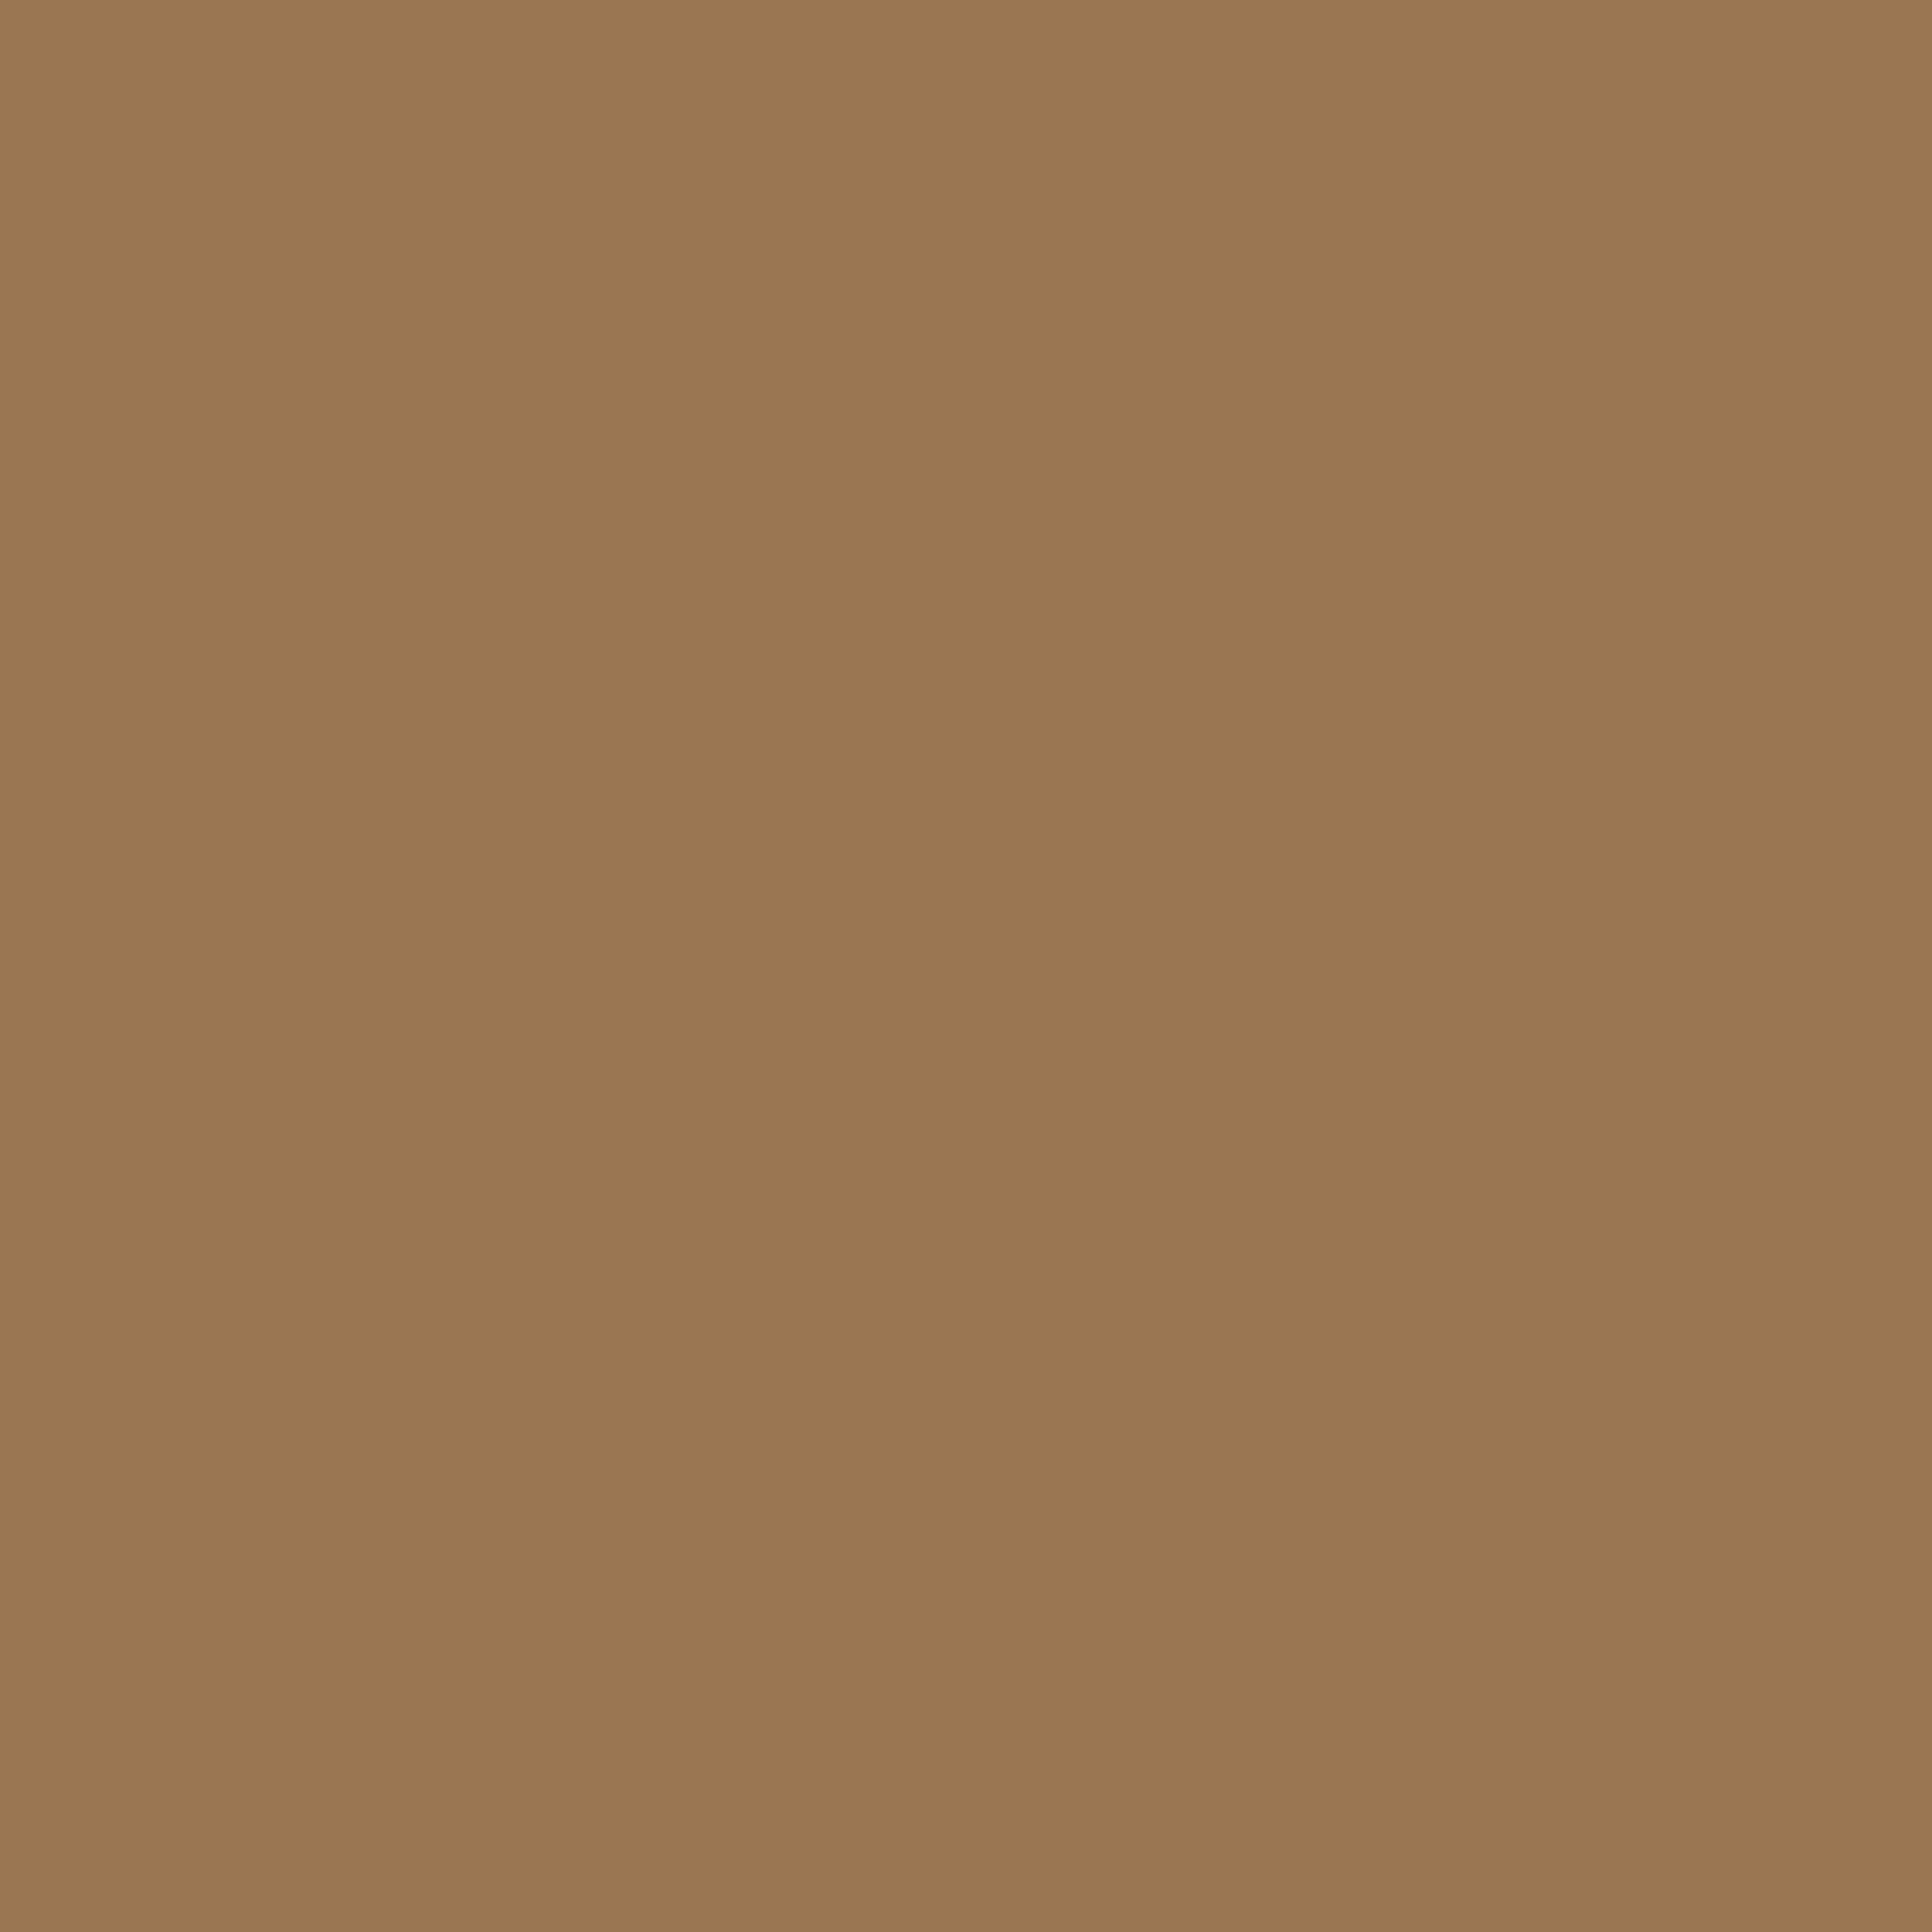 2732x2732 Dirt Solid Color Background